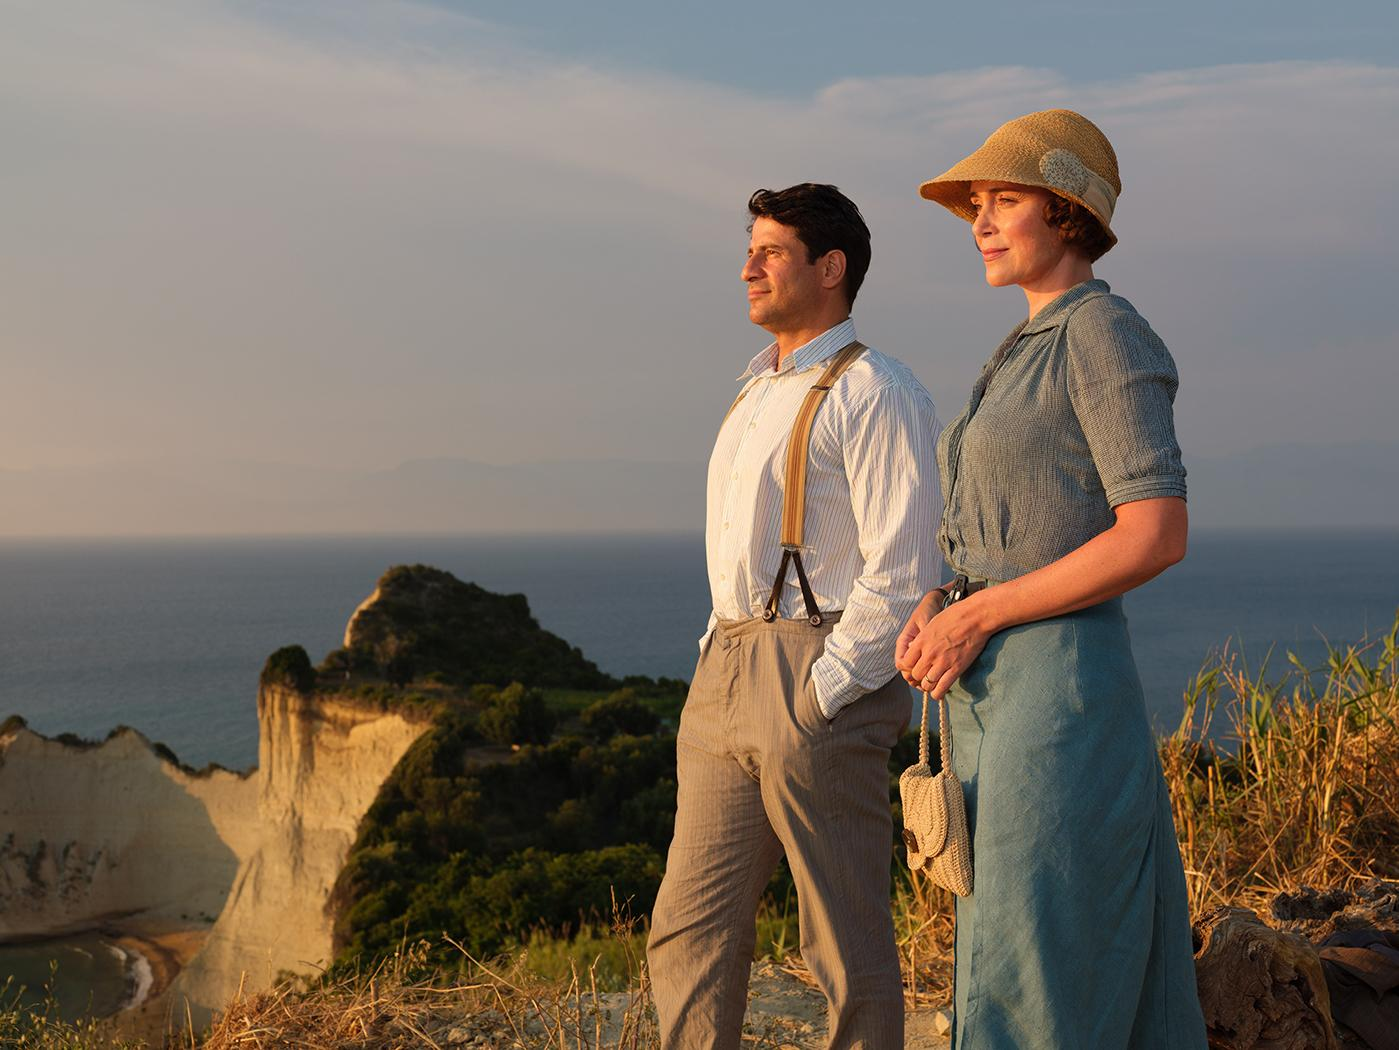 Spiro (ALEXIS GEORGOULIS), Louisa Durrell (KEELEY HAWES) in The Durrells in Corfu. Photo: Joss Barratt for Sid Gentle Films & MASTERPIECE